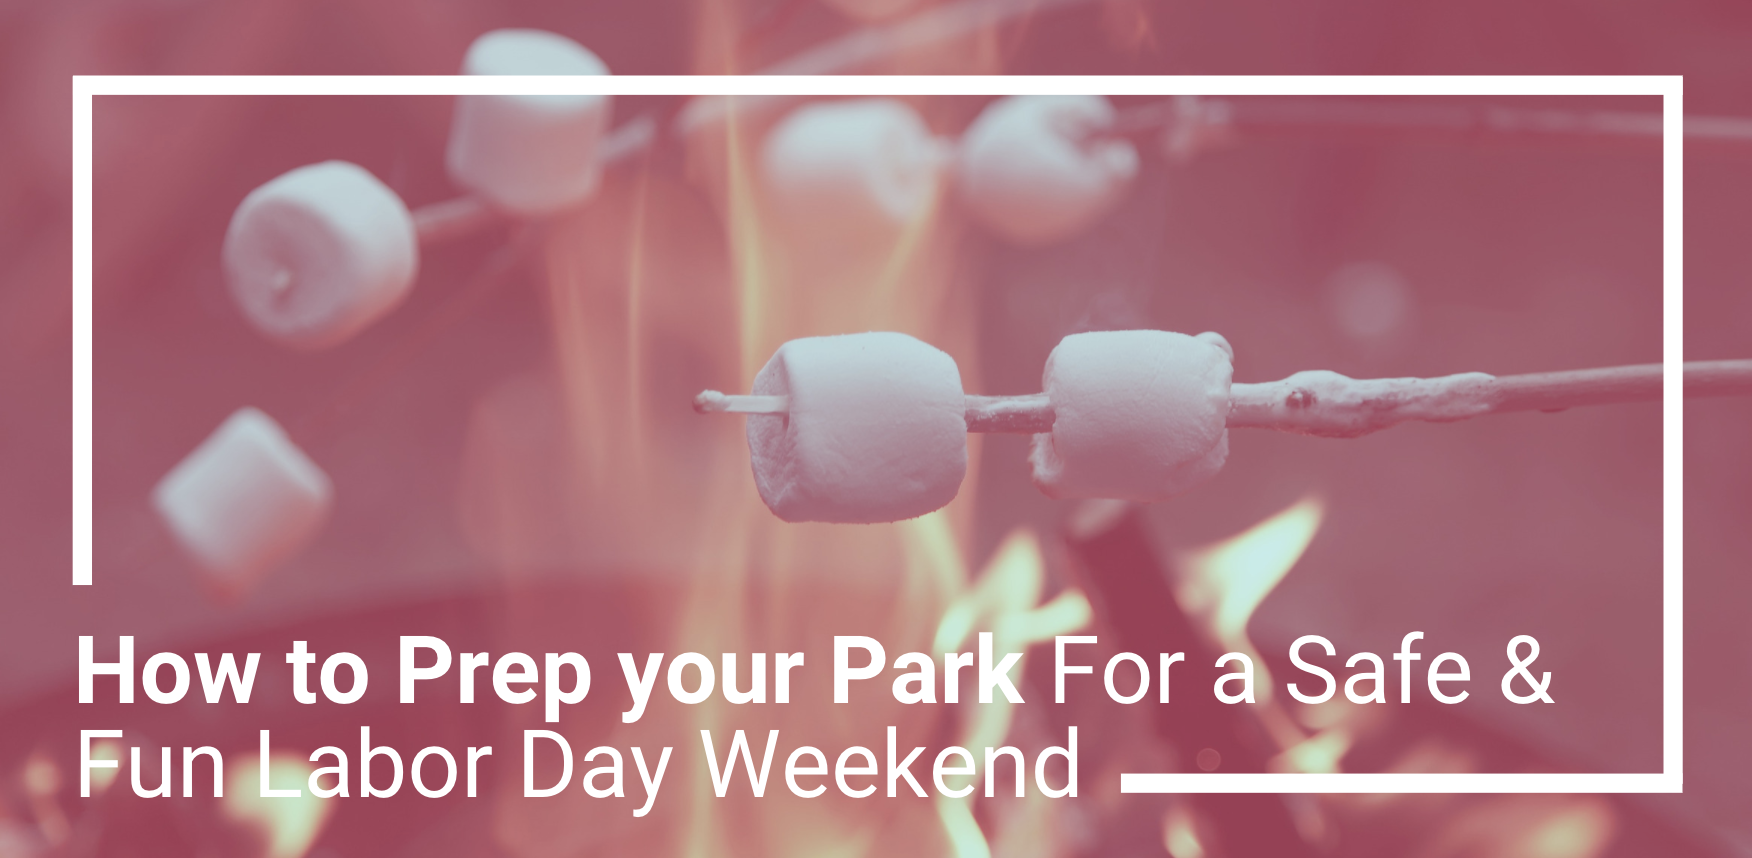 How to Prep your Park For a Safe & Fun Labor Day Weekend